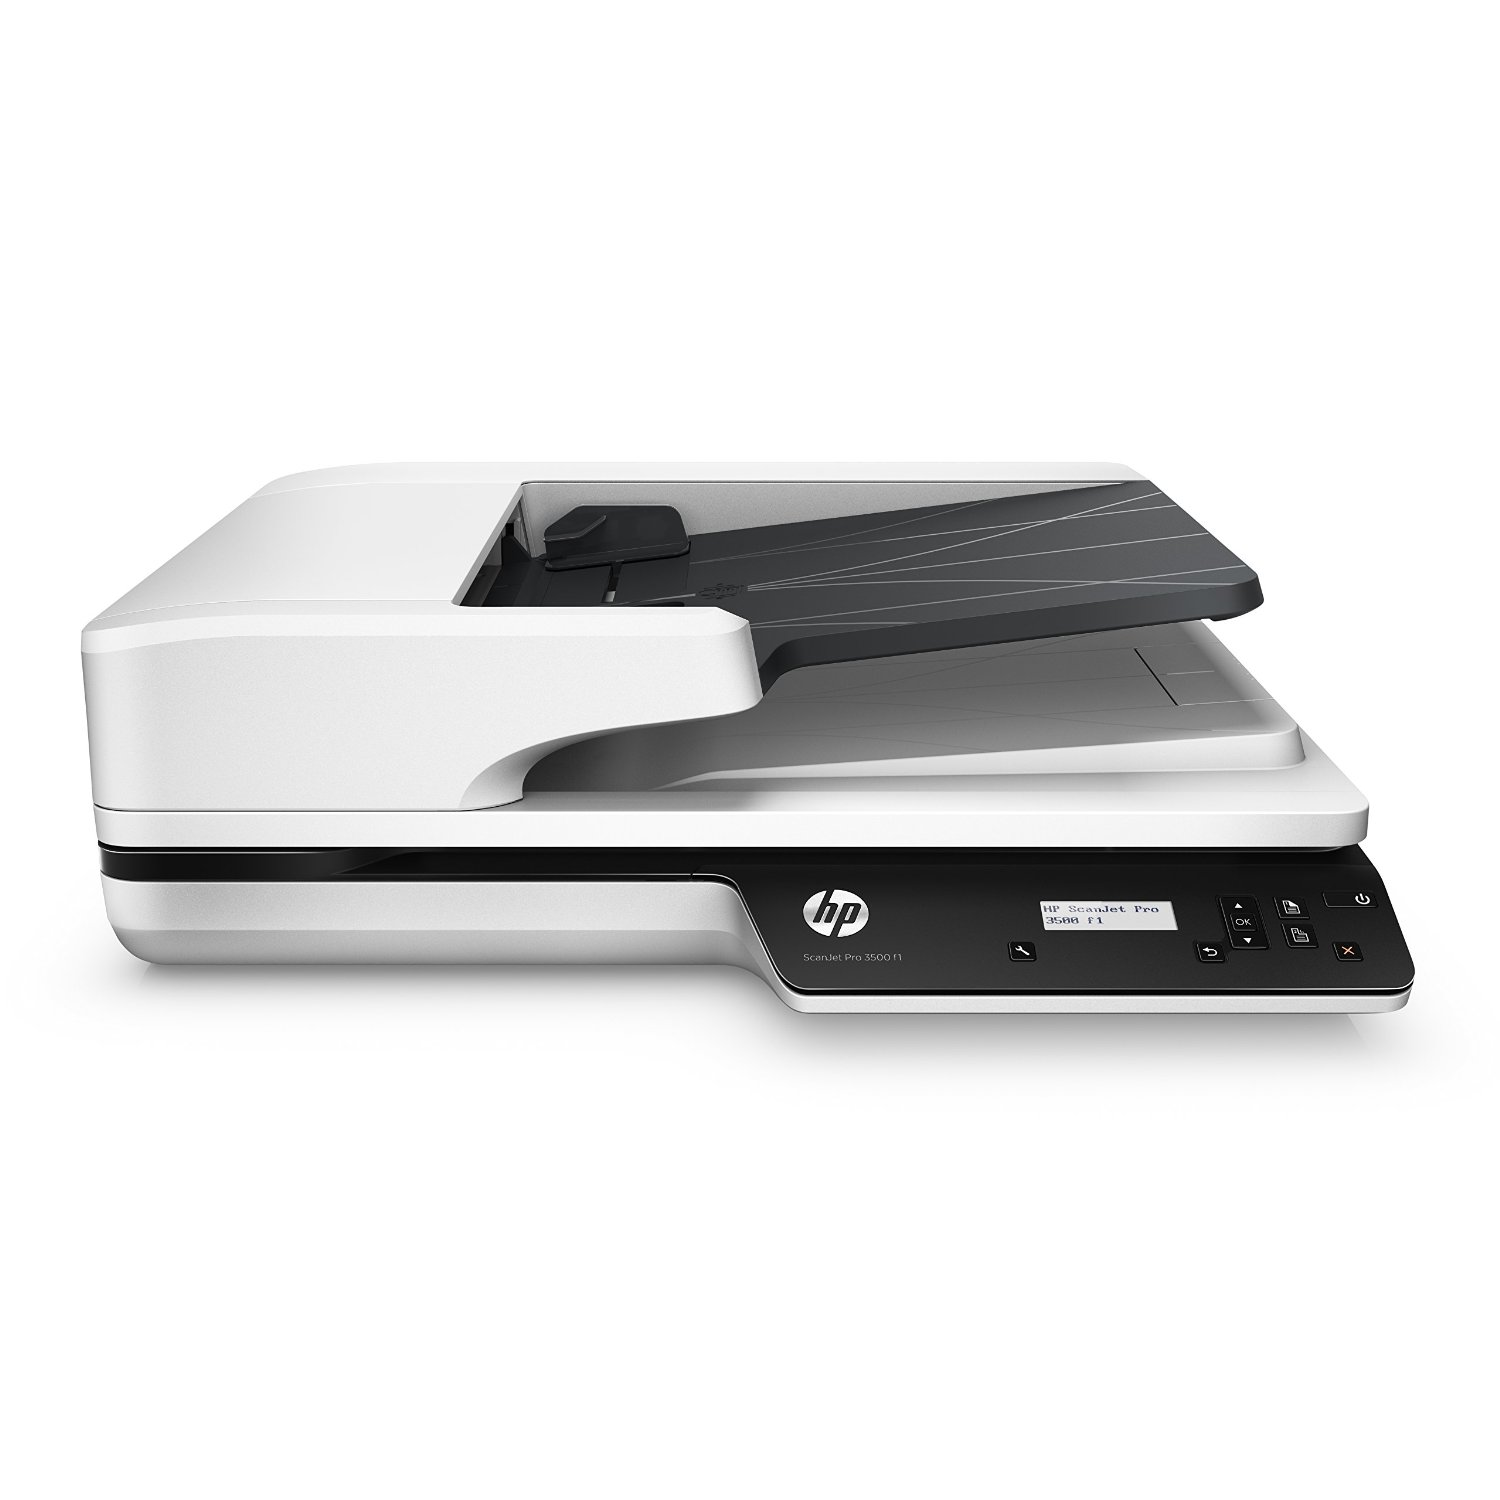 hp scanjet pro 3500 f1 manual